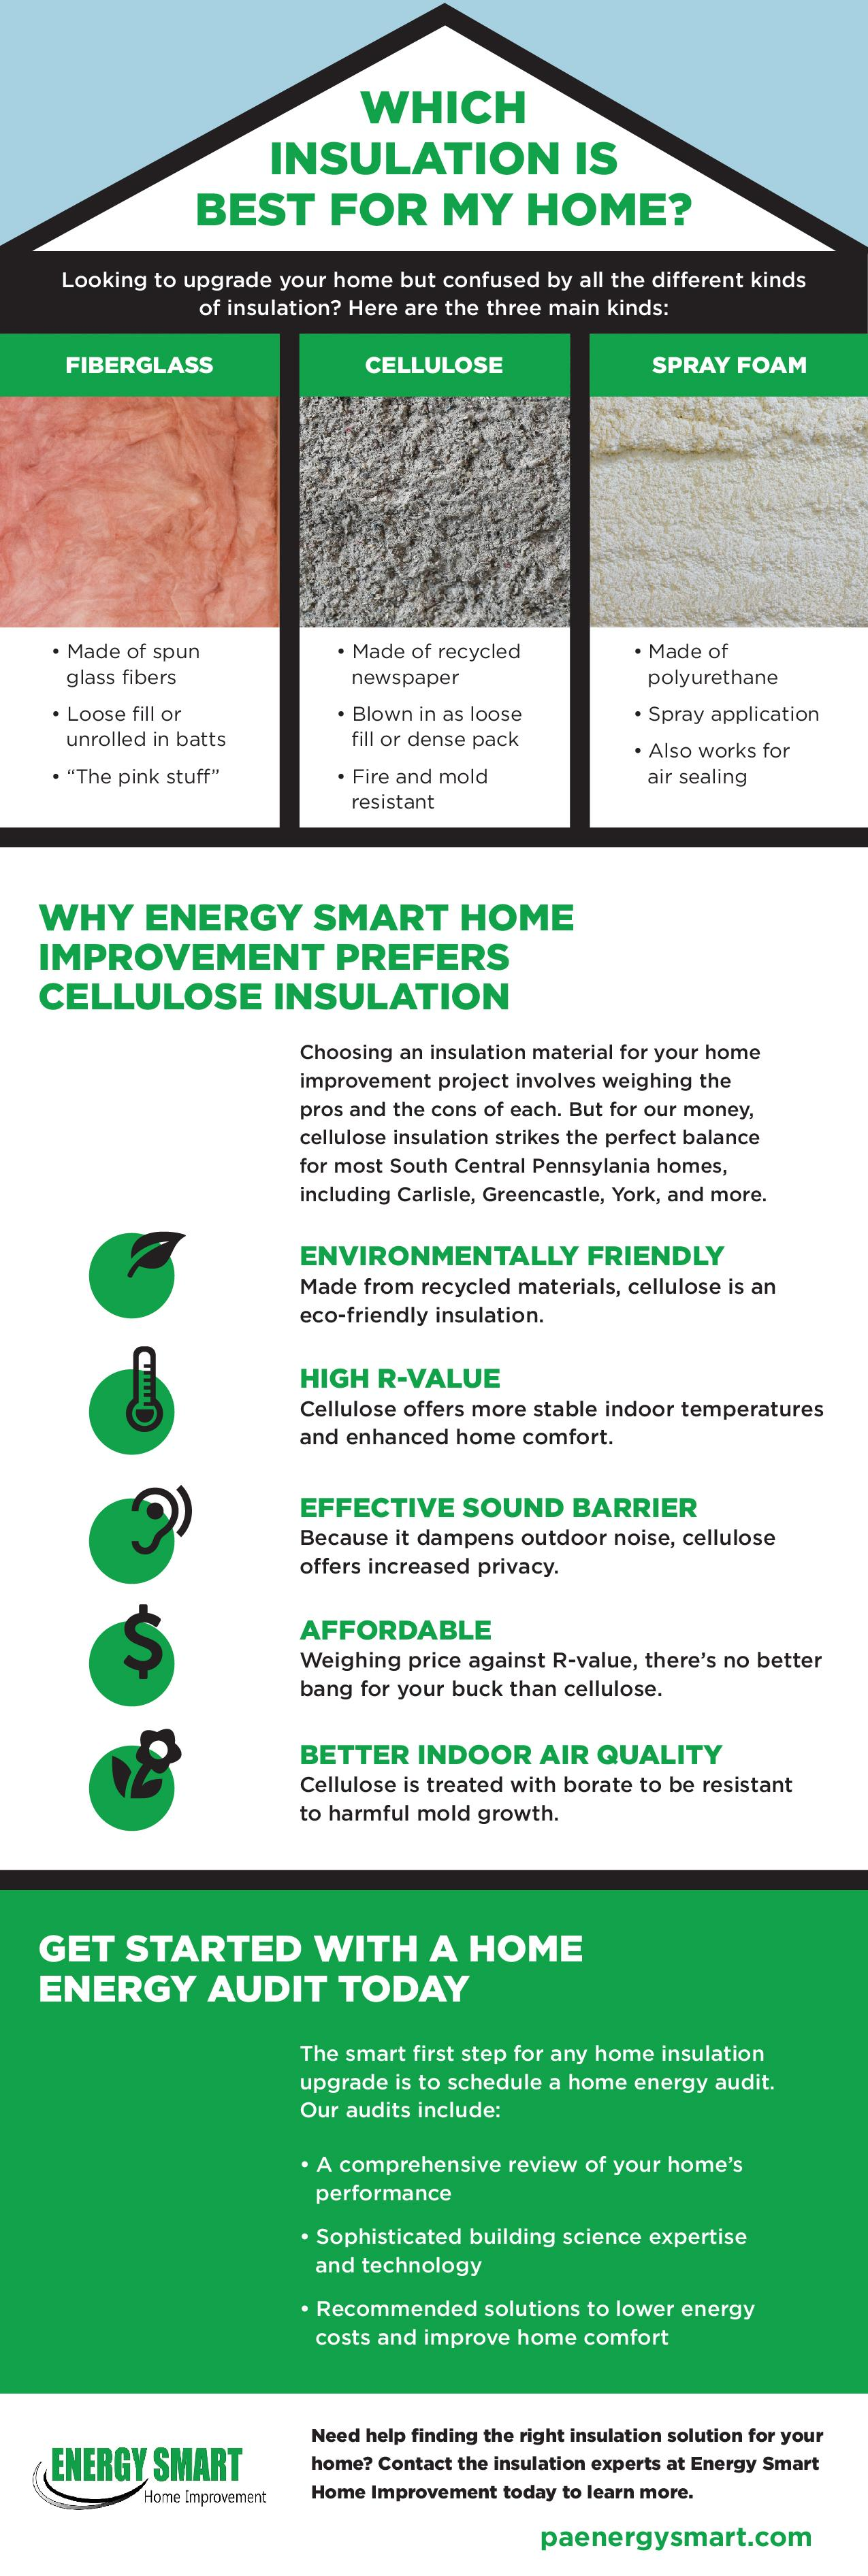 energy smart home which insulation is best infographic